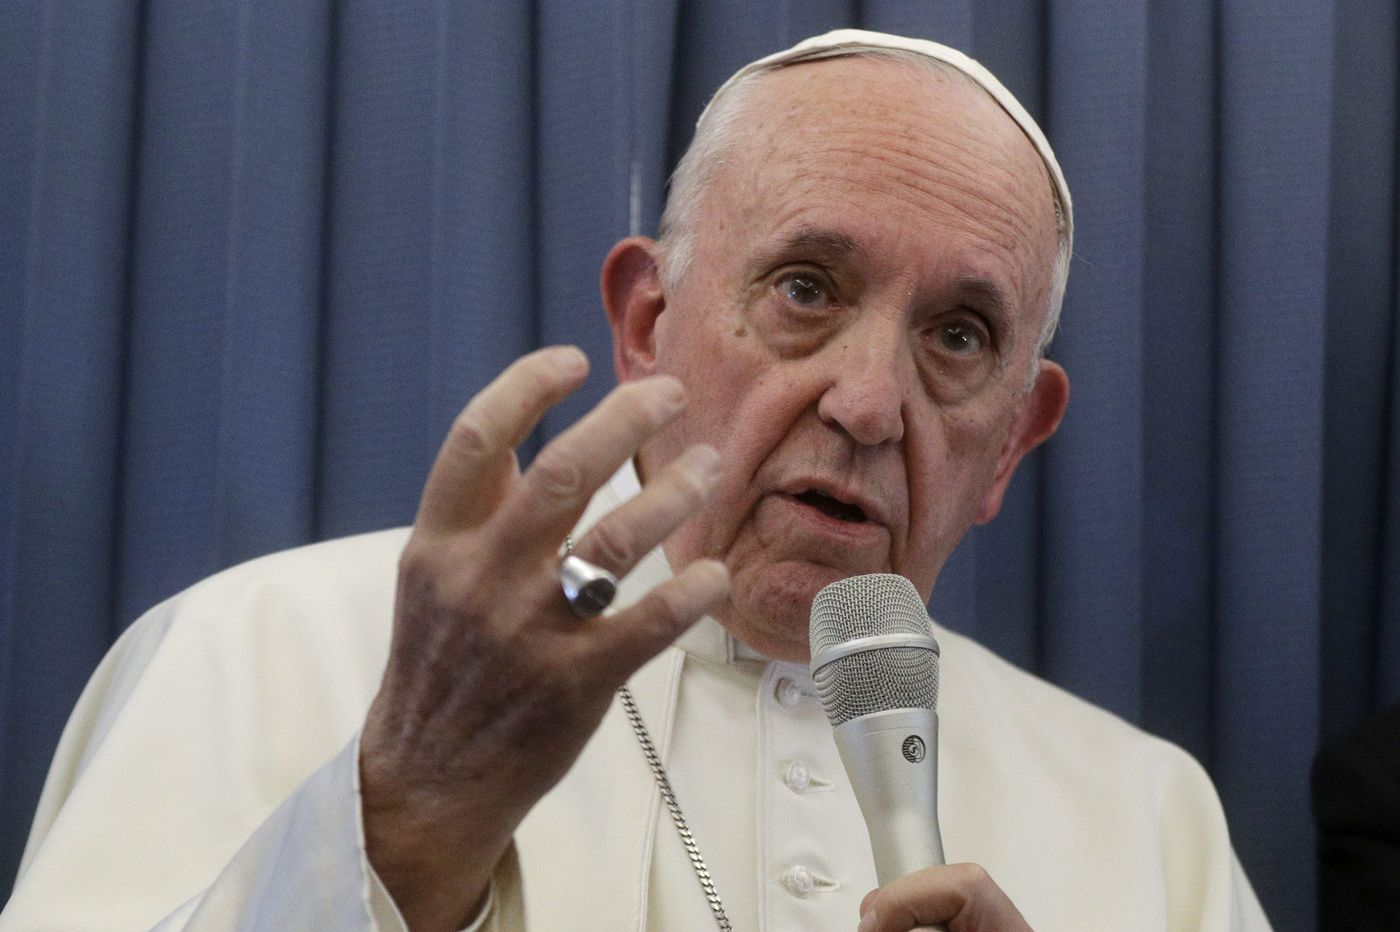 Pope Francis must lead the Catholic Church toward truth and transparency | Editorial